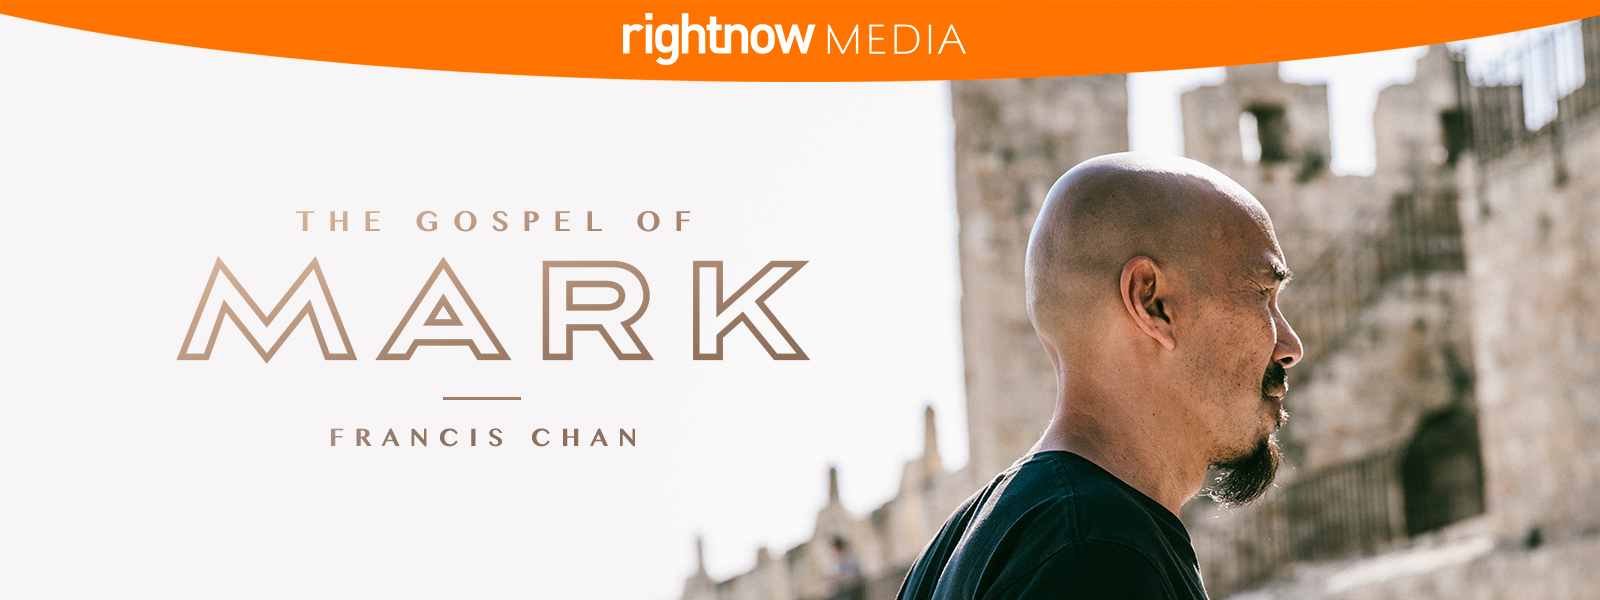 The Gospel of Mark-Young Adults-Singles-Bible Study-Francis Chan- Katy, Texas-Houston-Richmond image